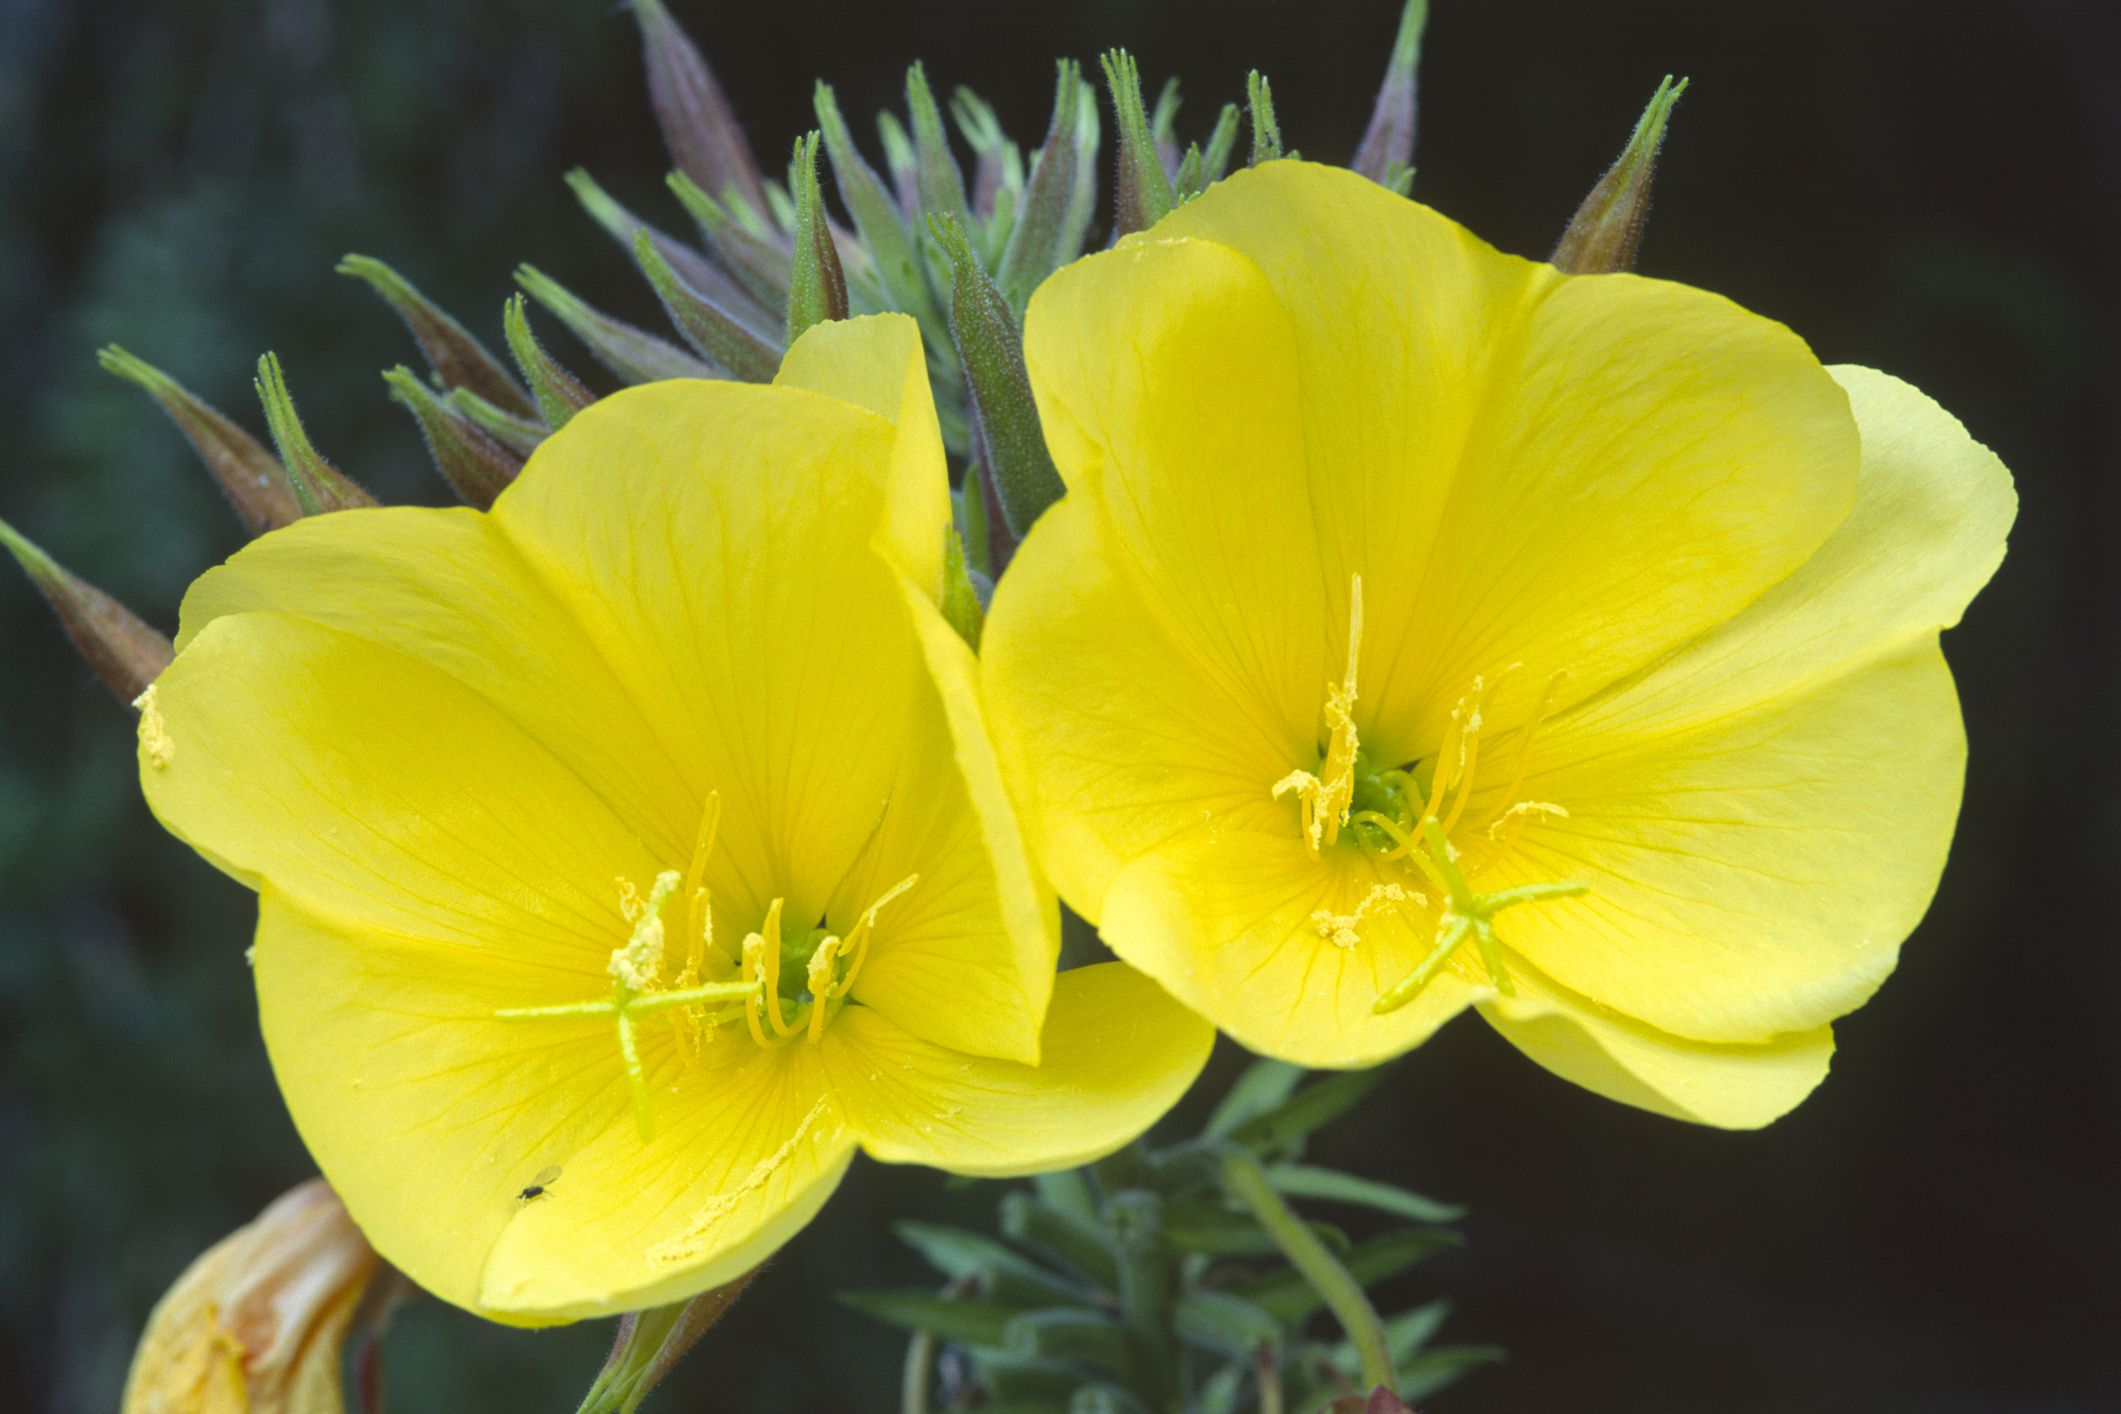 Evening Primrose Oil: Benefits, Side Effects, Interactions